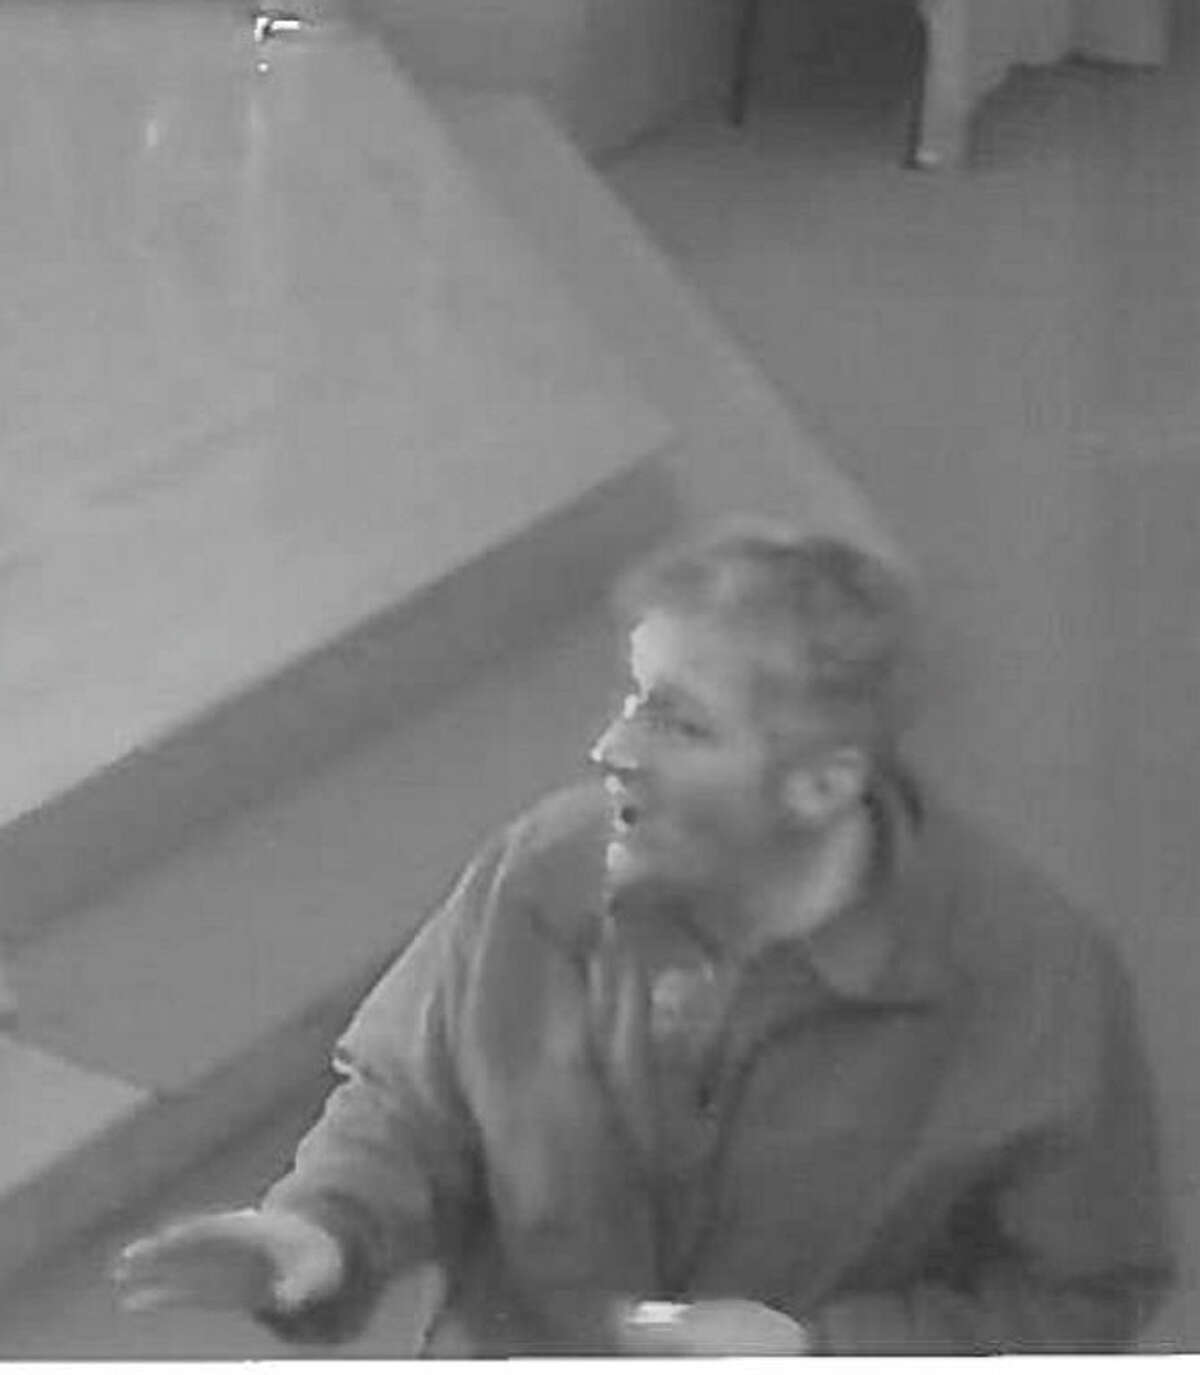 Police are searching for this man, who they say stole a donation box containing about $100 from Our Lady of Fatima Church on Danbury Road.